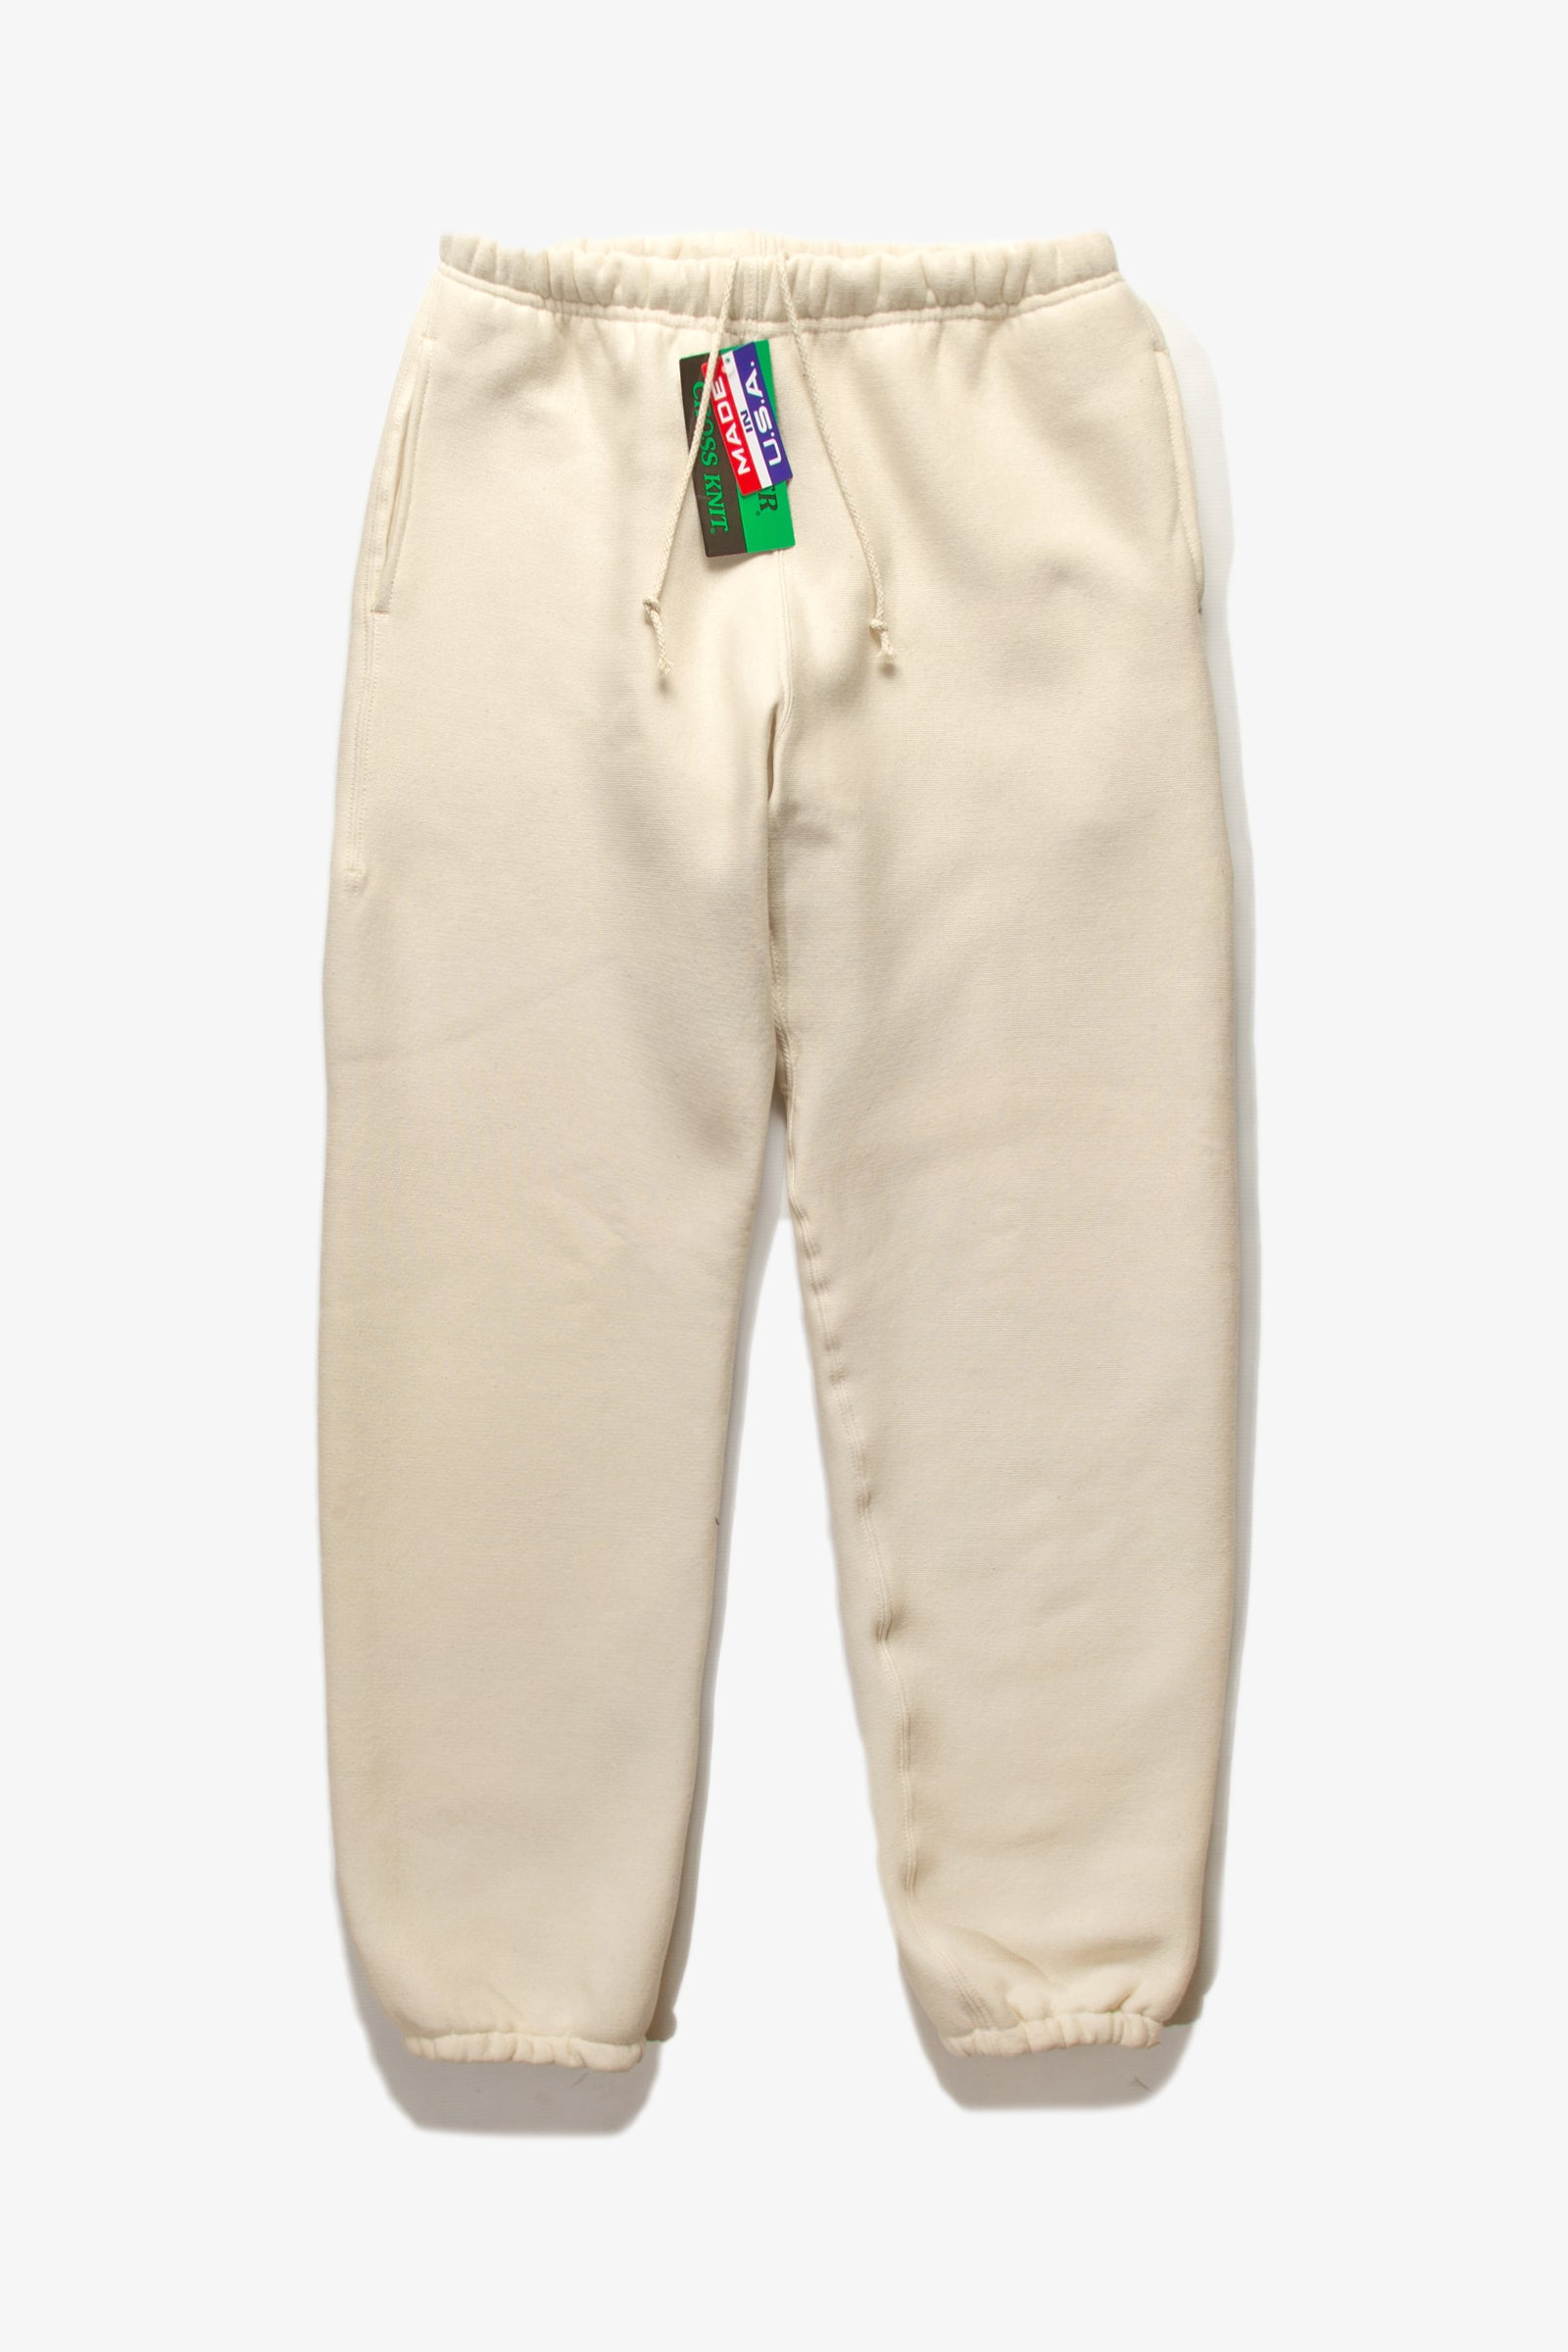 Camber USA - 233 12oz Sweatpants - Natural